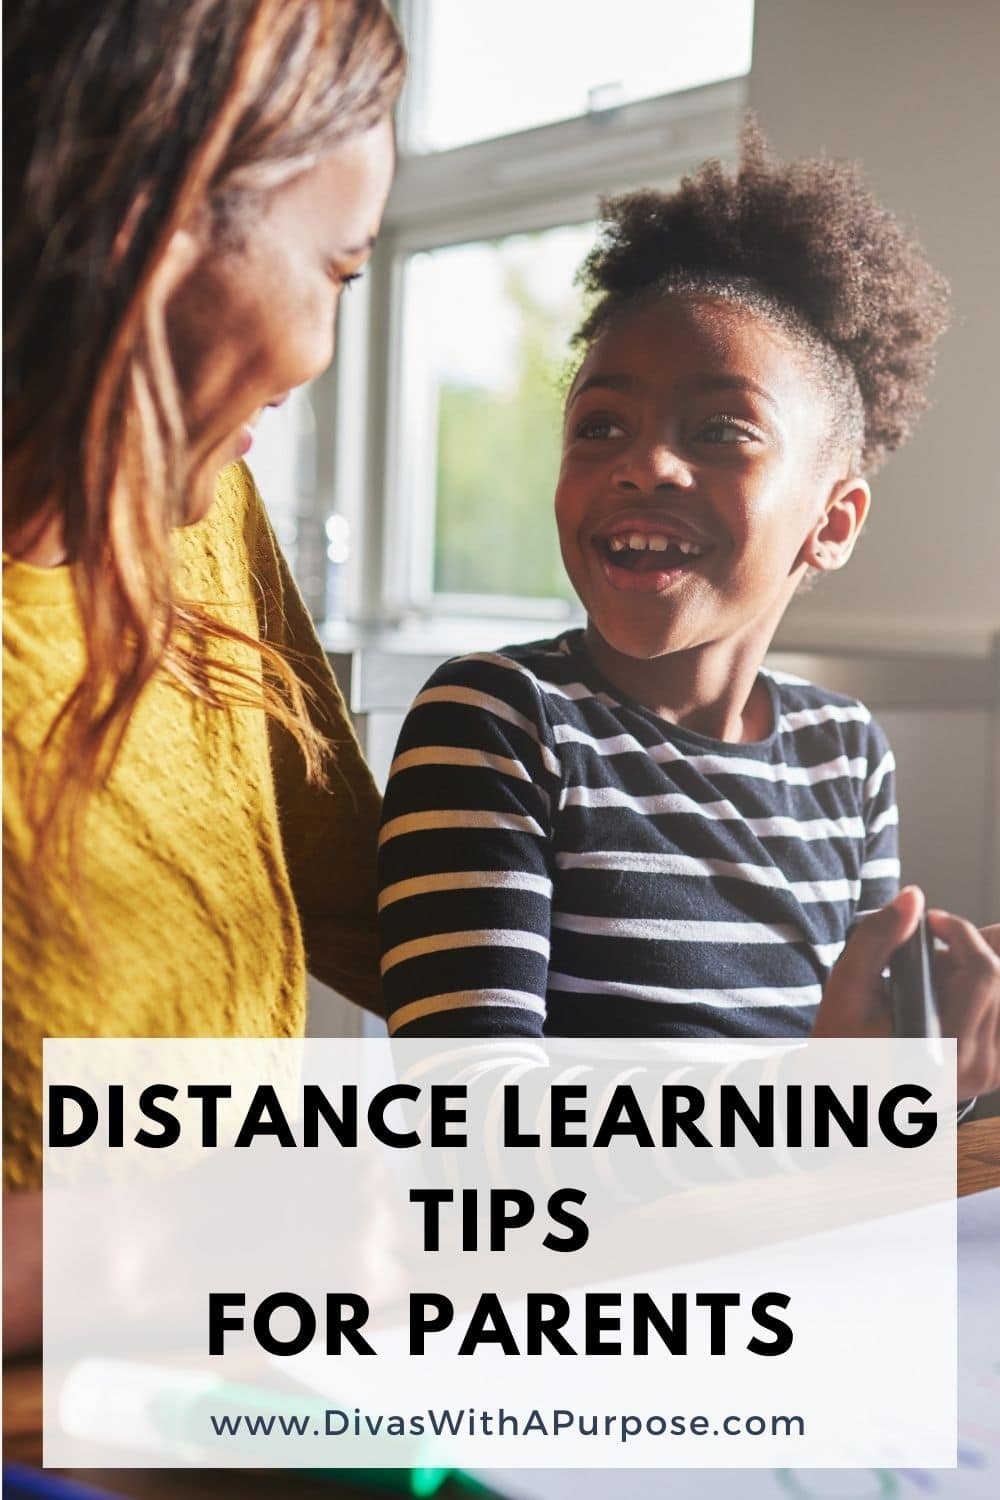 Have you found yourself questioning just how you (and your children) will survive distance learning? Here are a few tricks that will make distance learning go more smoothly.